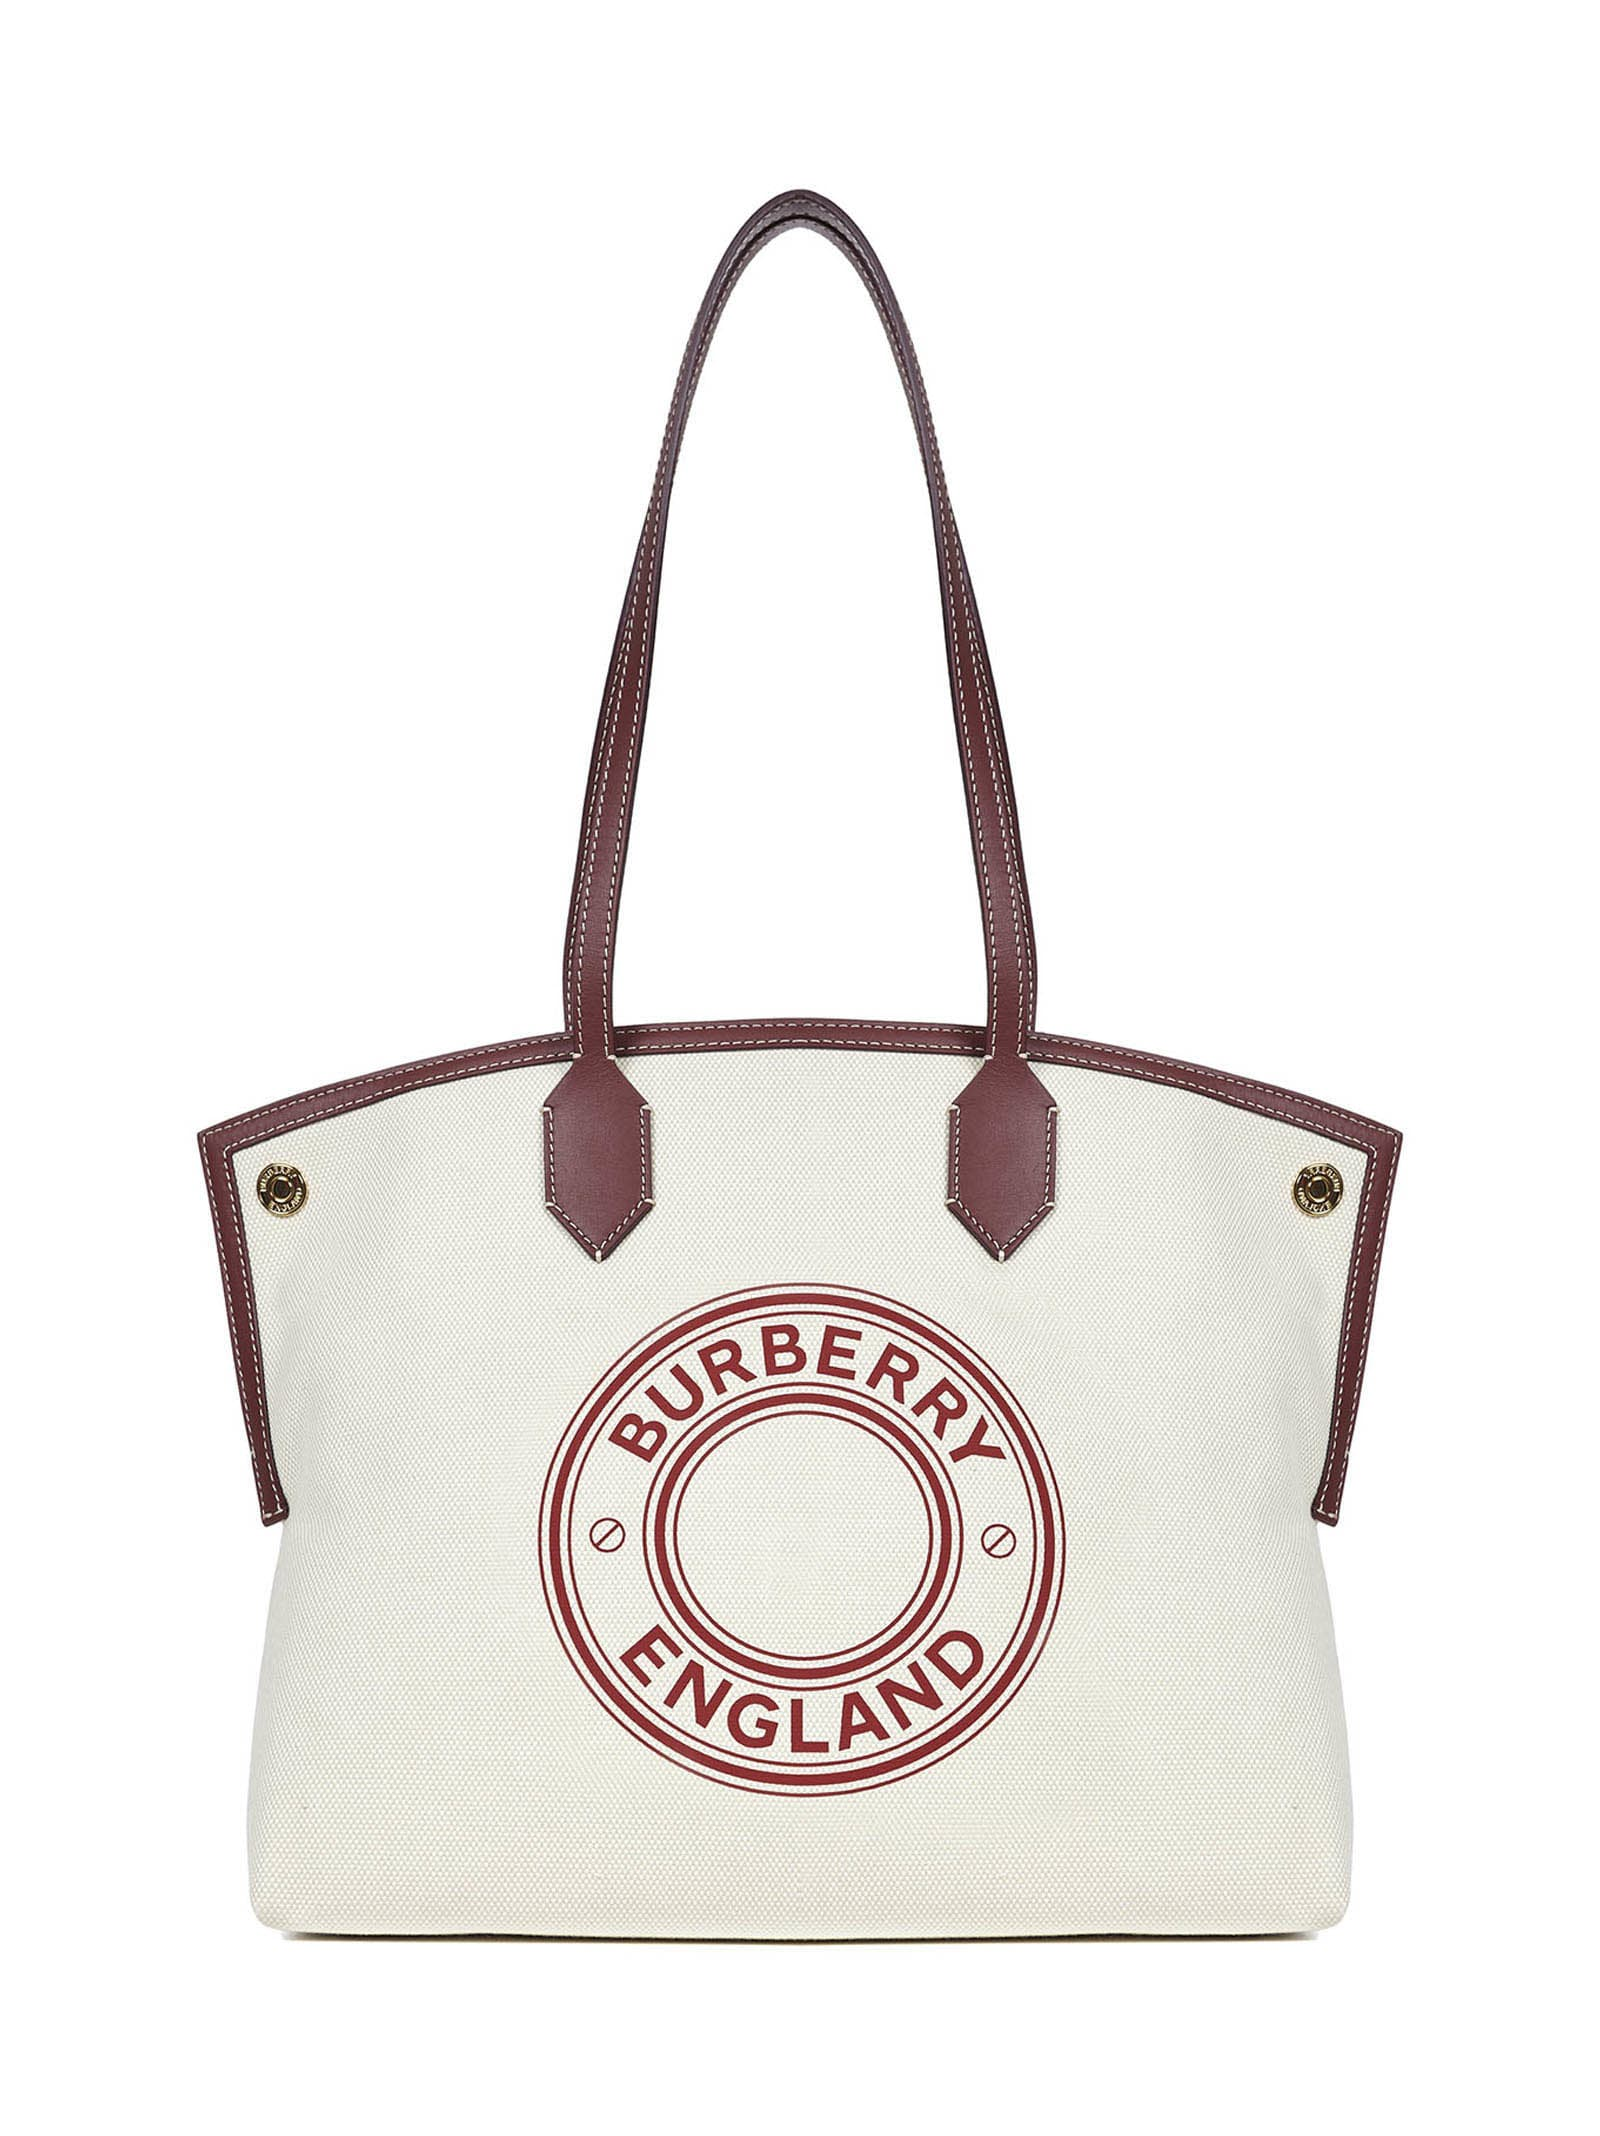 Burberry Society Medium Shoulder Bag In White